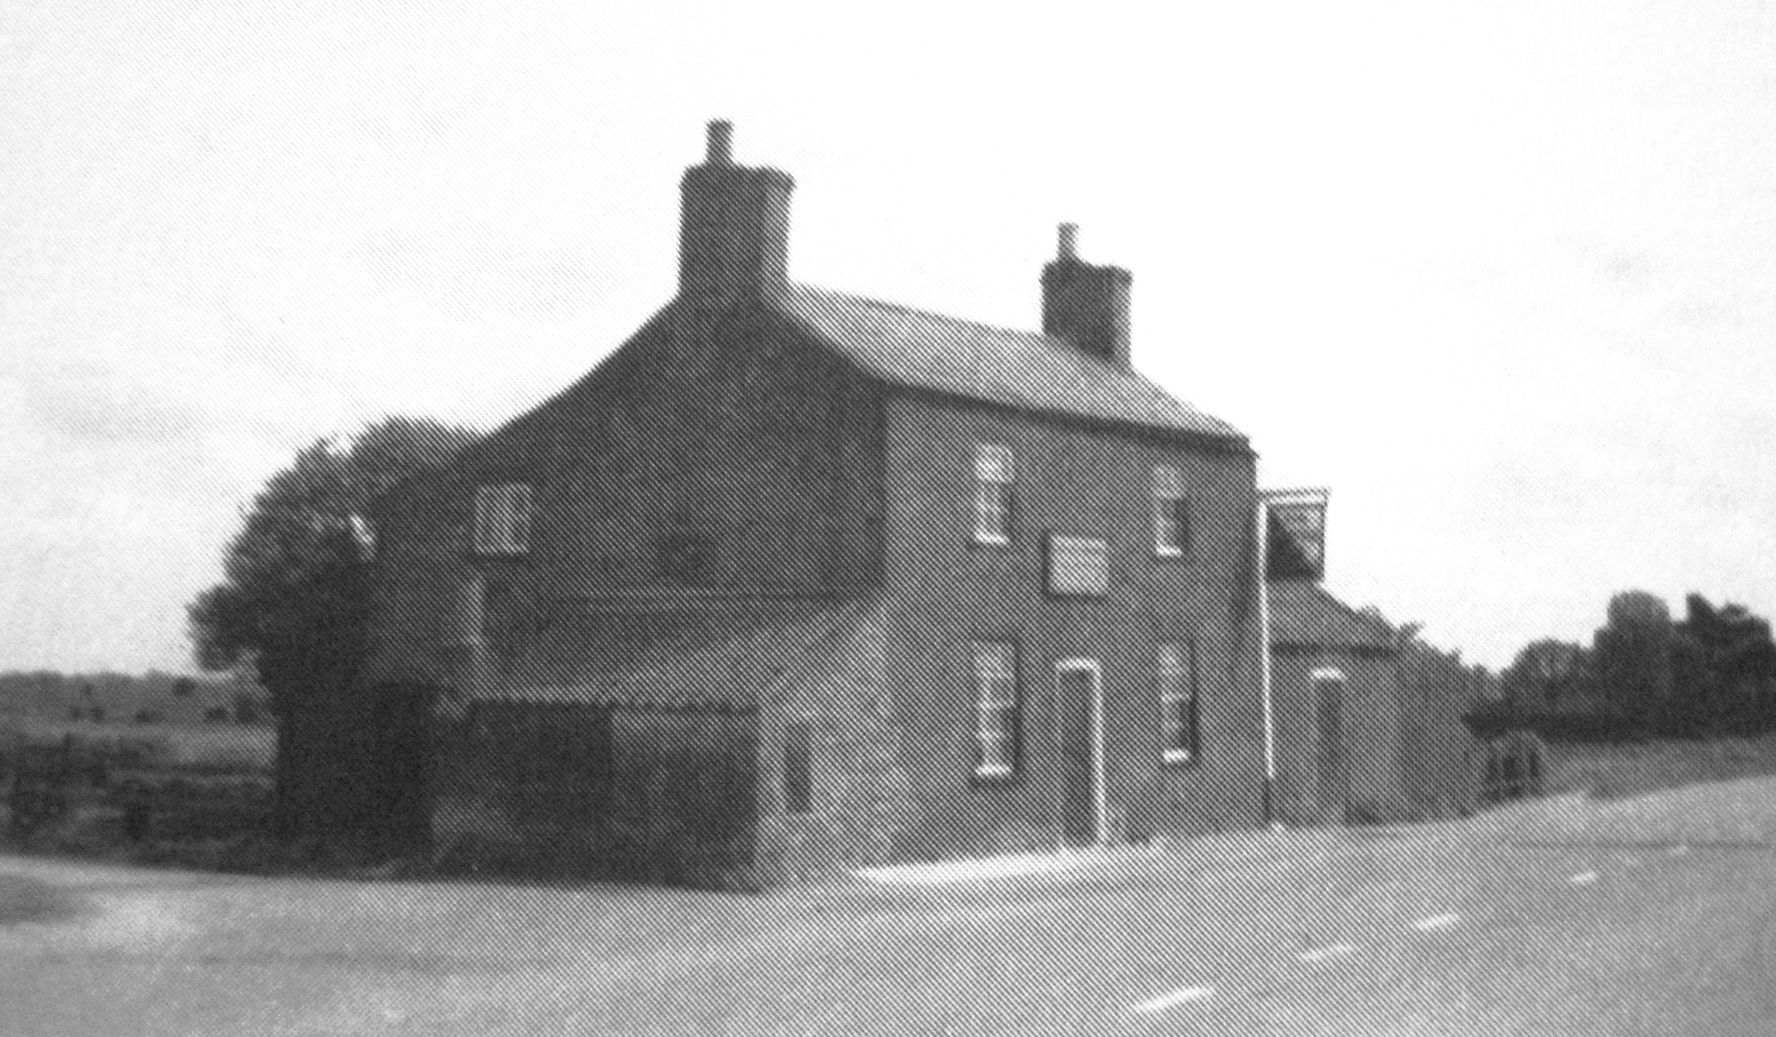 The Peacock Inn, West Pinchbeck